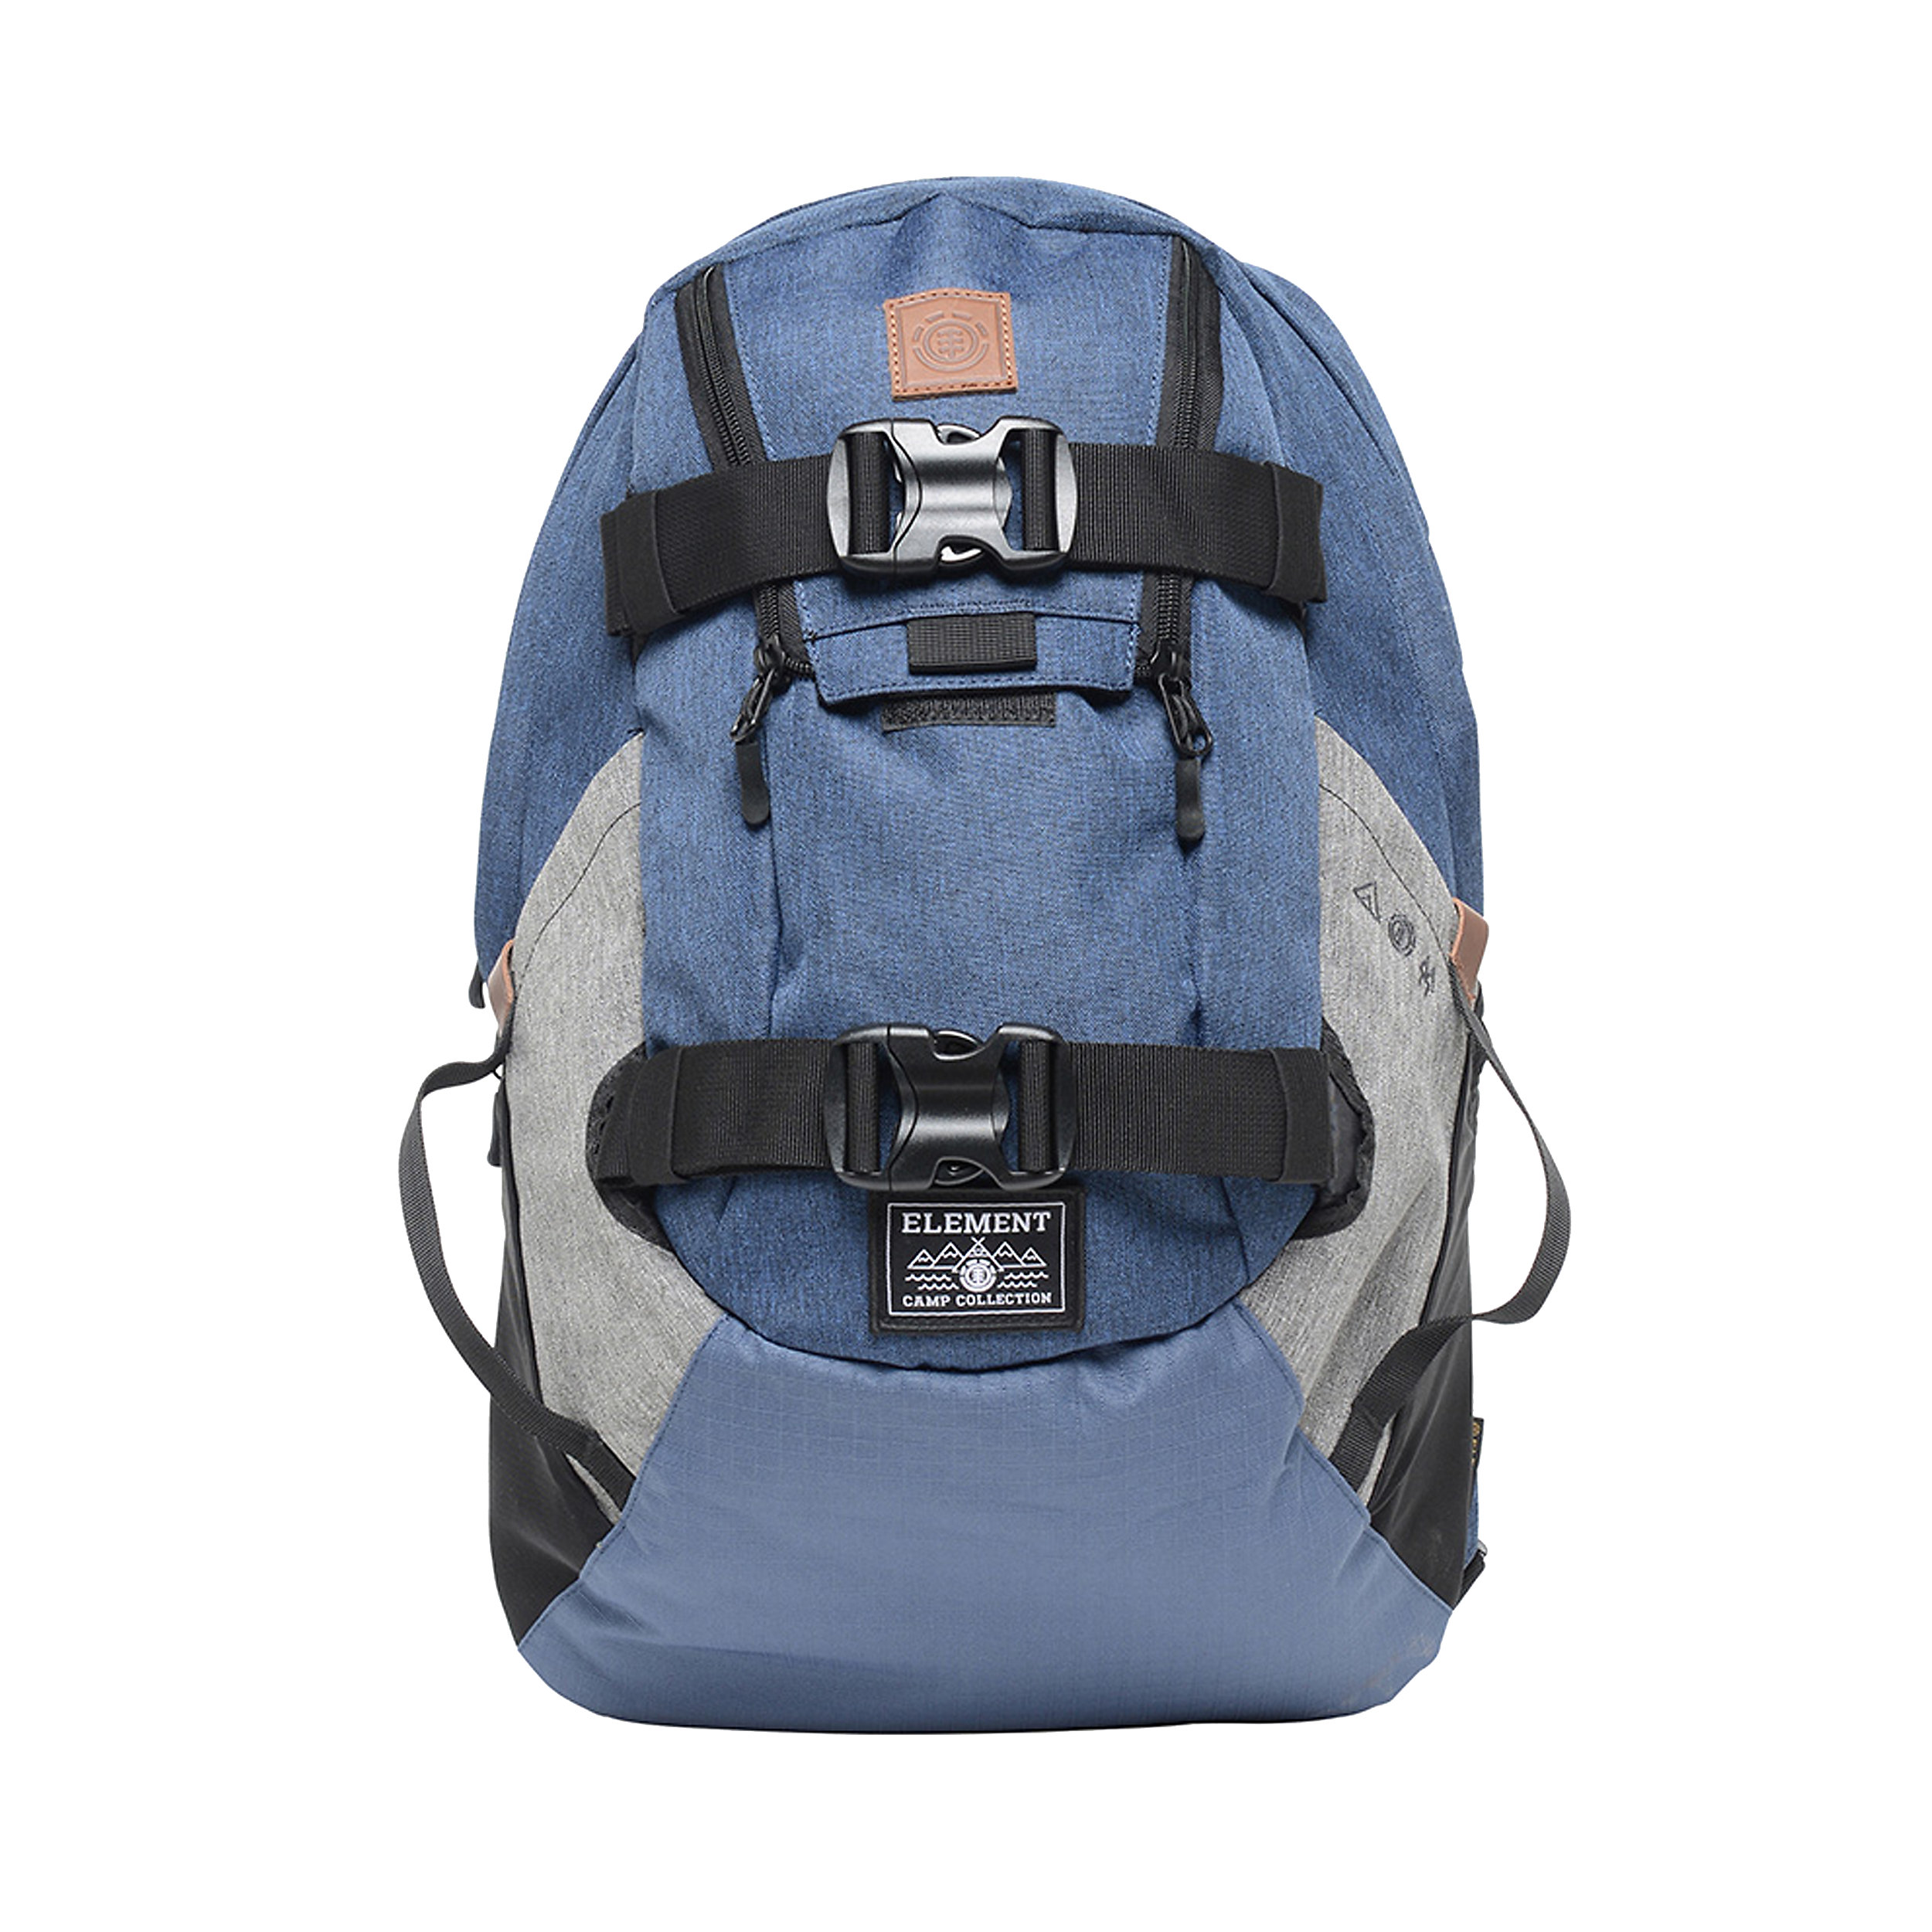 "Skaterrucksack The Daily 15"" Saison 2017/18 Camp Collection 25 Liter"